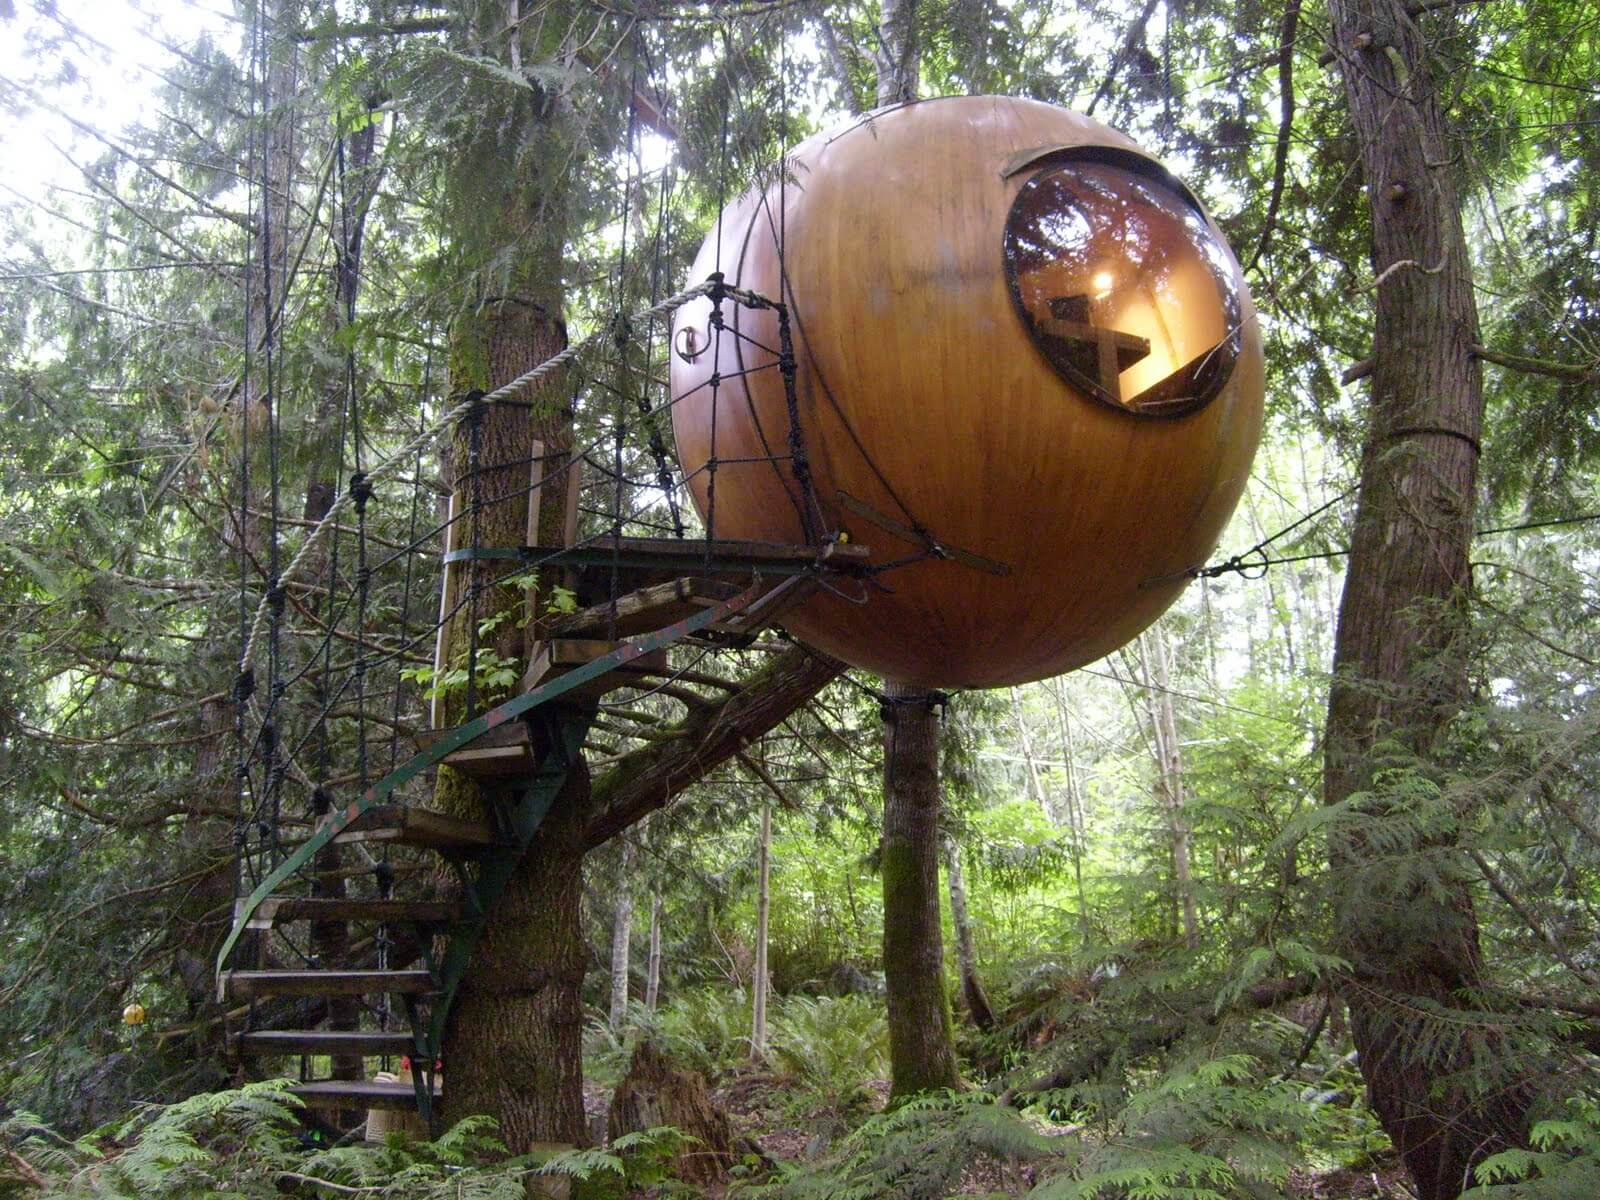 Take Your Pick on Responsible Tourism: From Silence Retreats to Remote Tree House Rentals #Savant - Image: Jennmomoftwomunchkins.com